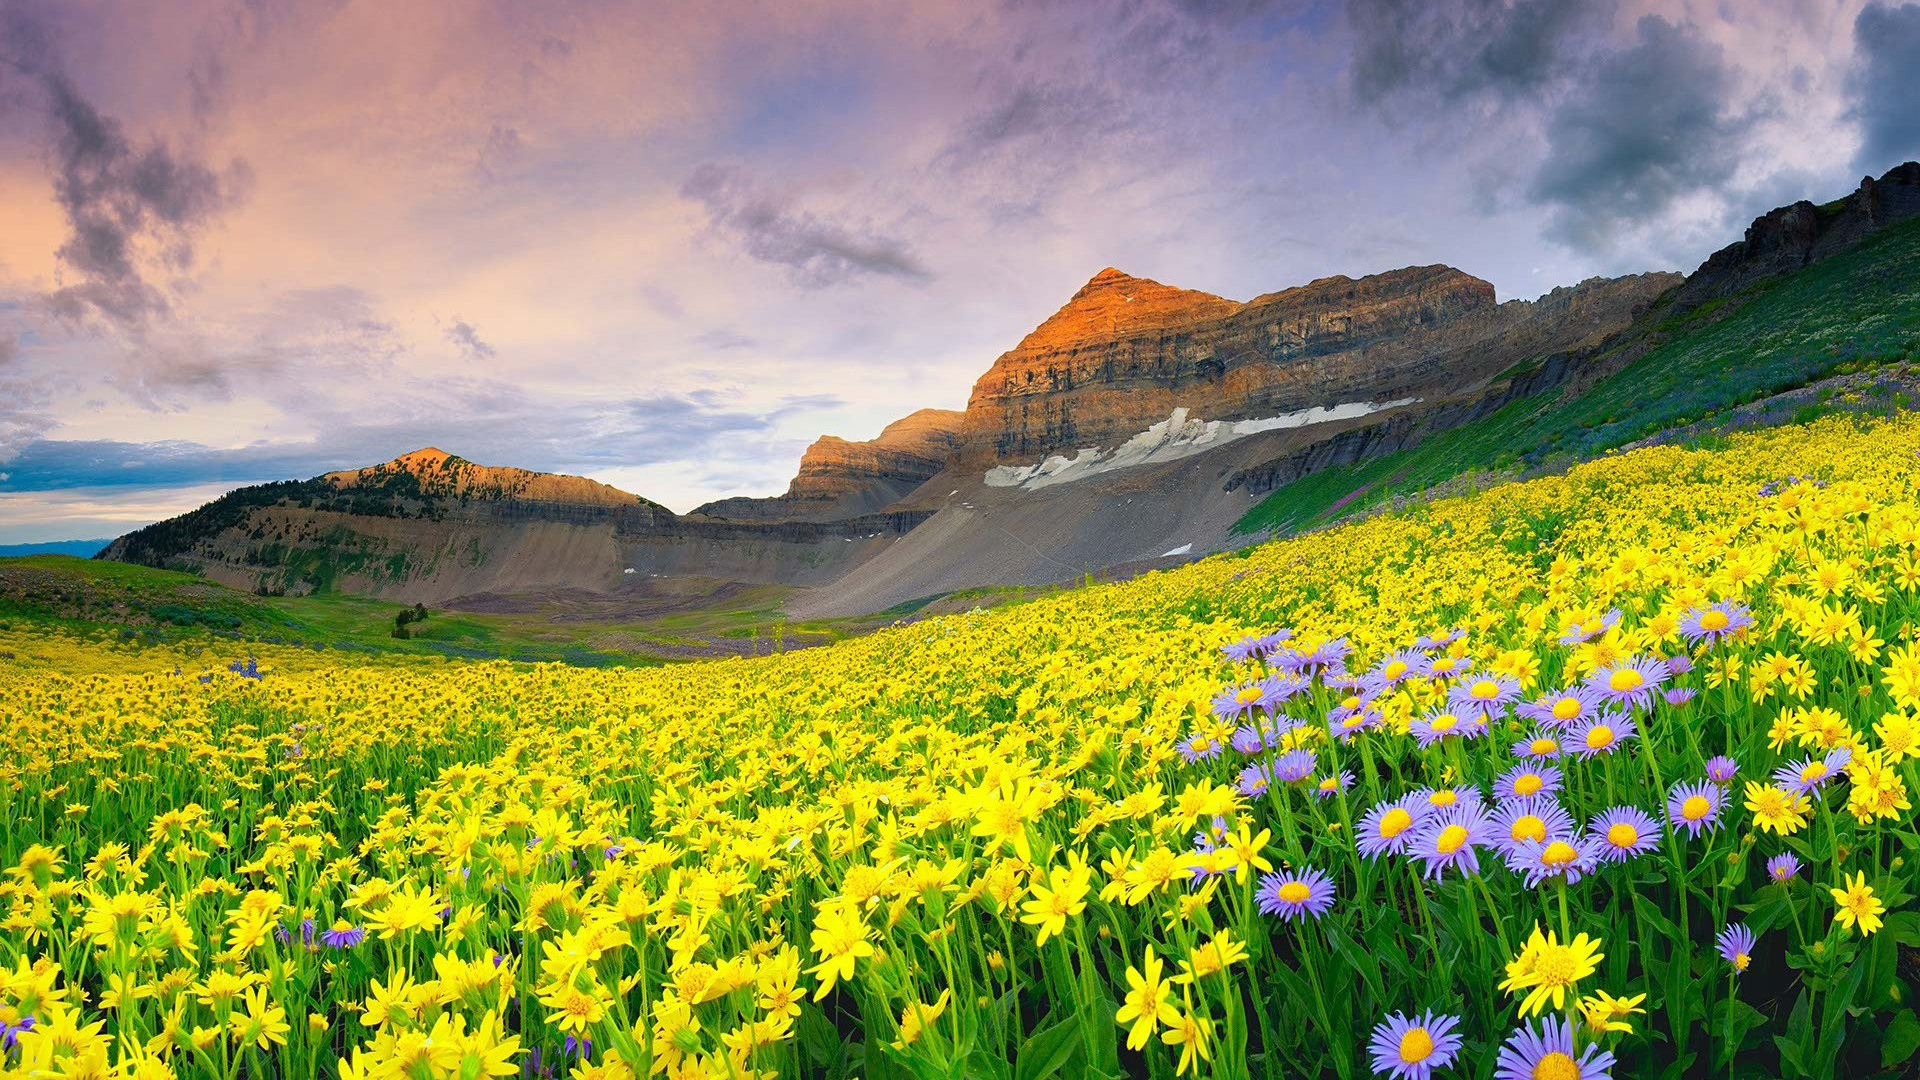 10 Best Nature Images HD In India With Valley Of Flowers